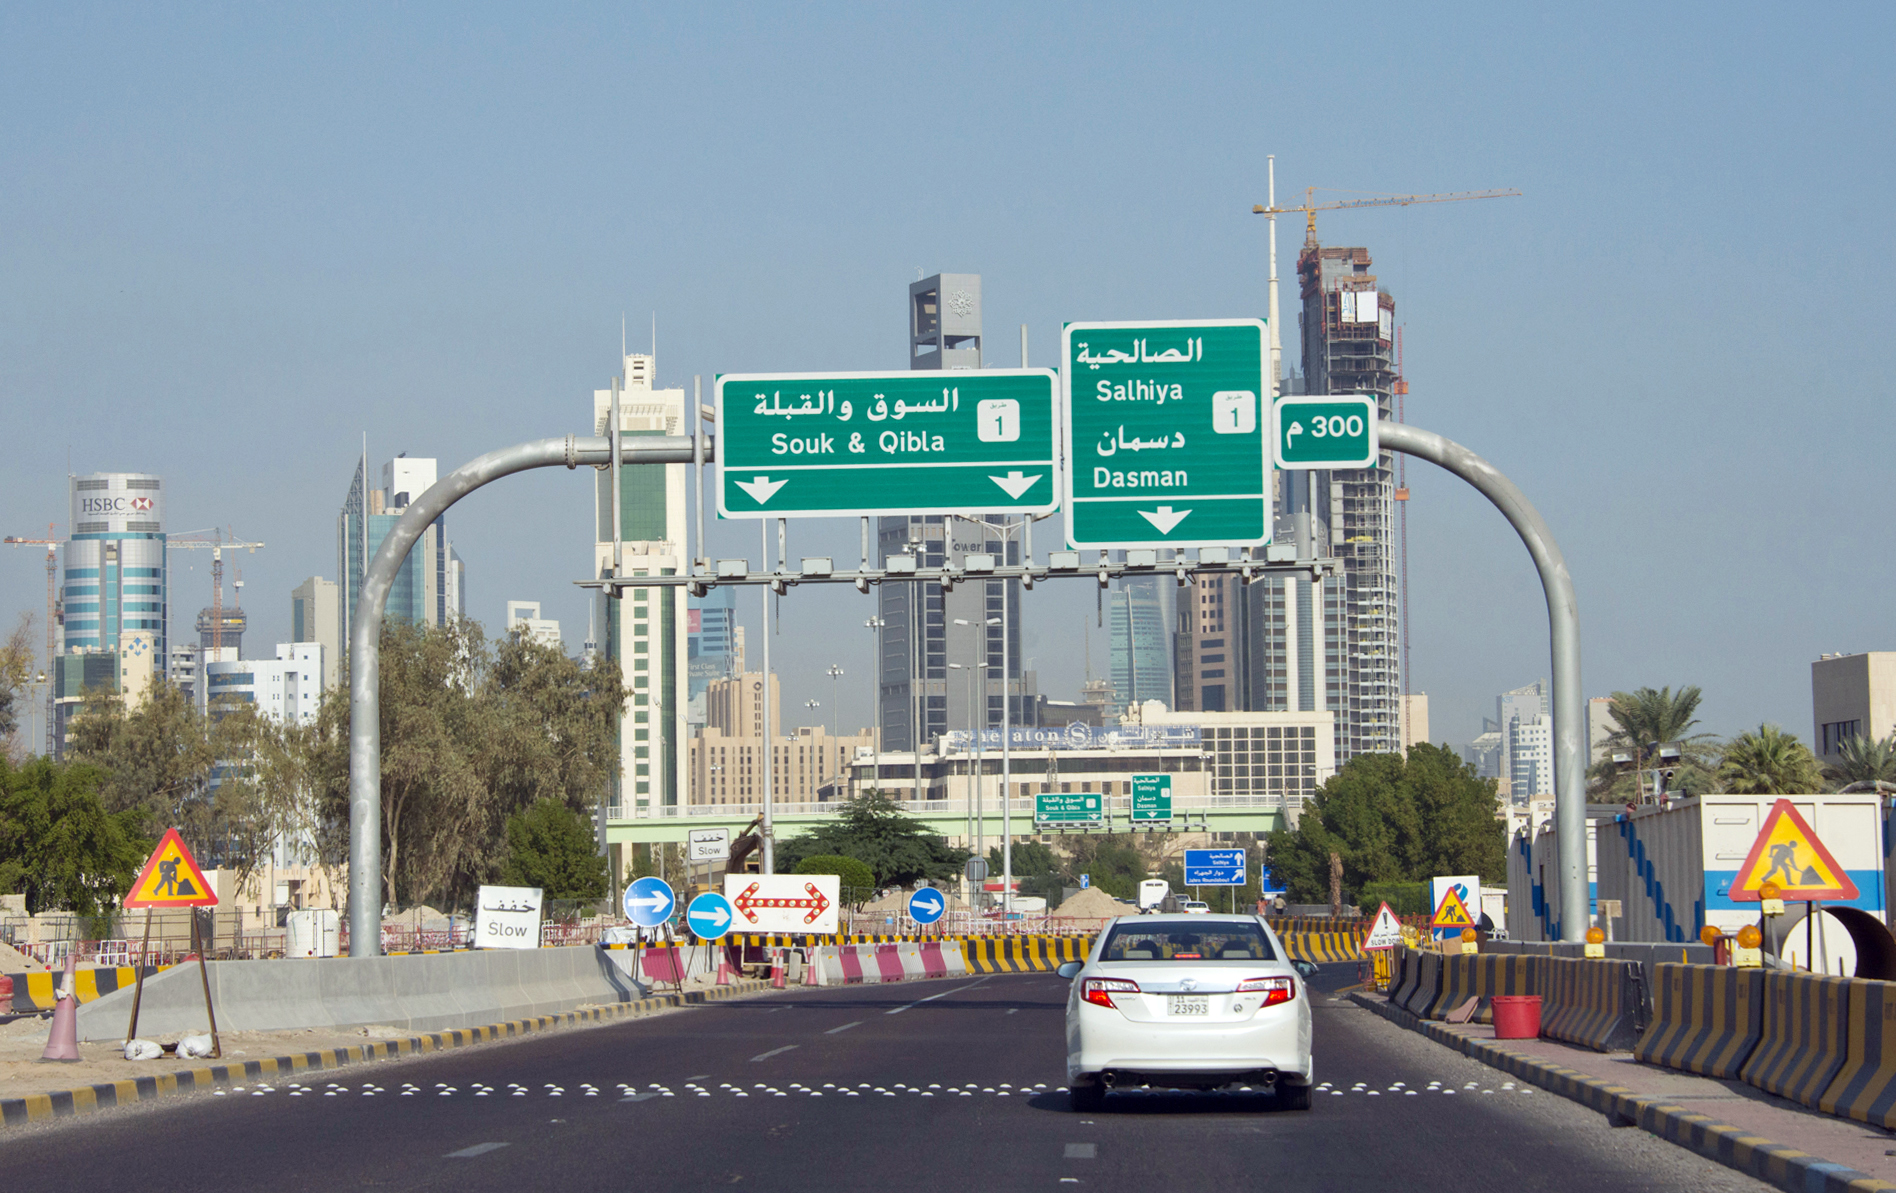 Kuwait to boost spending, eyes oil price at $55-$65/bbl - Middle